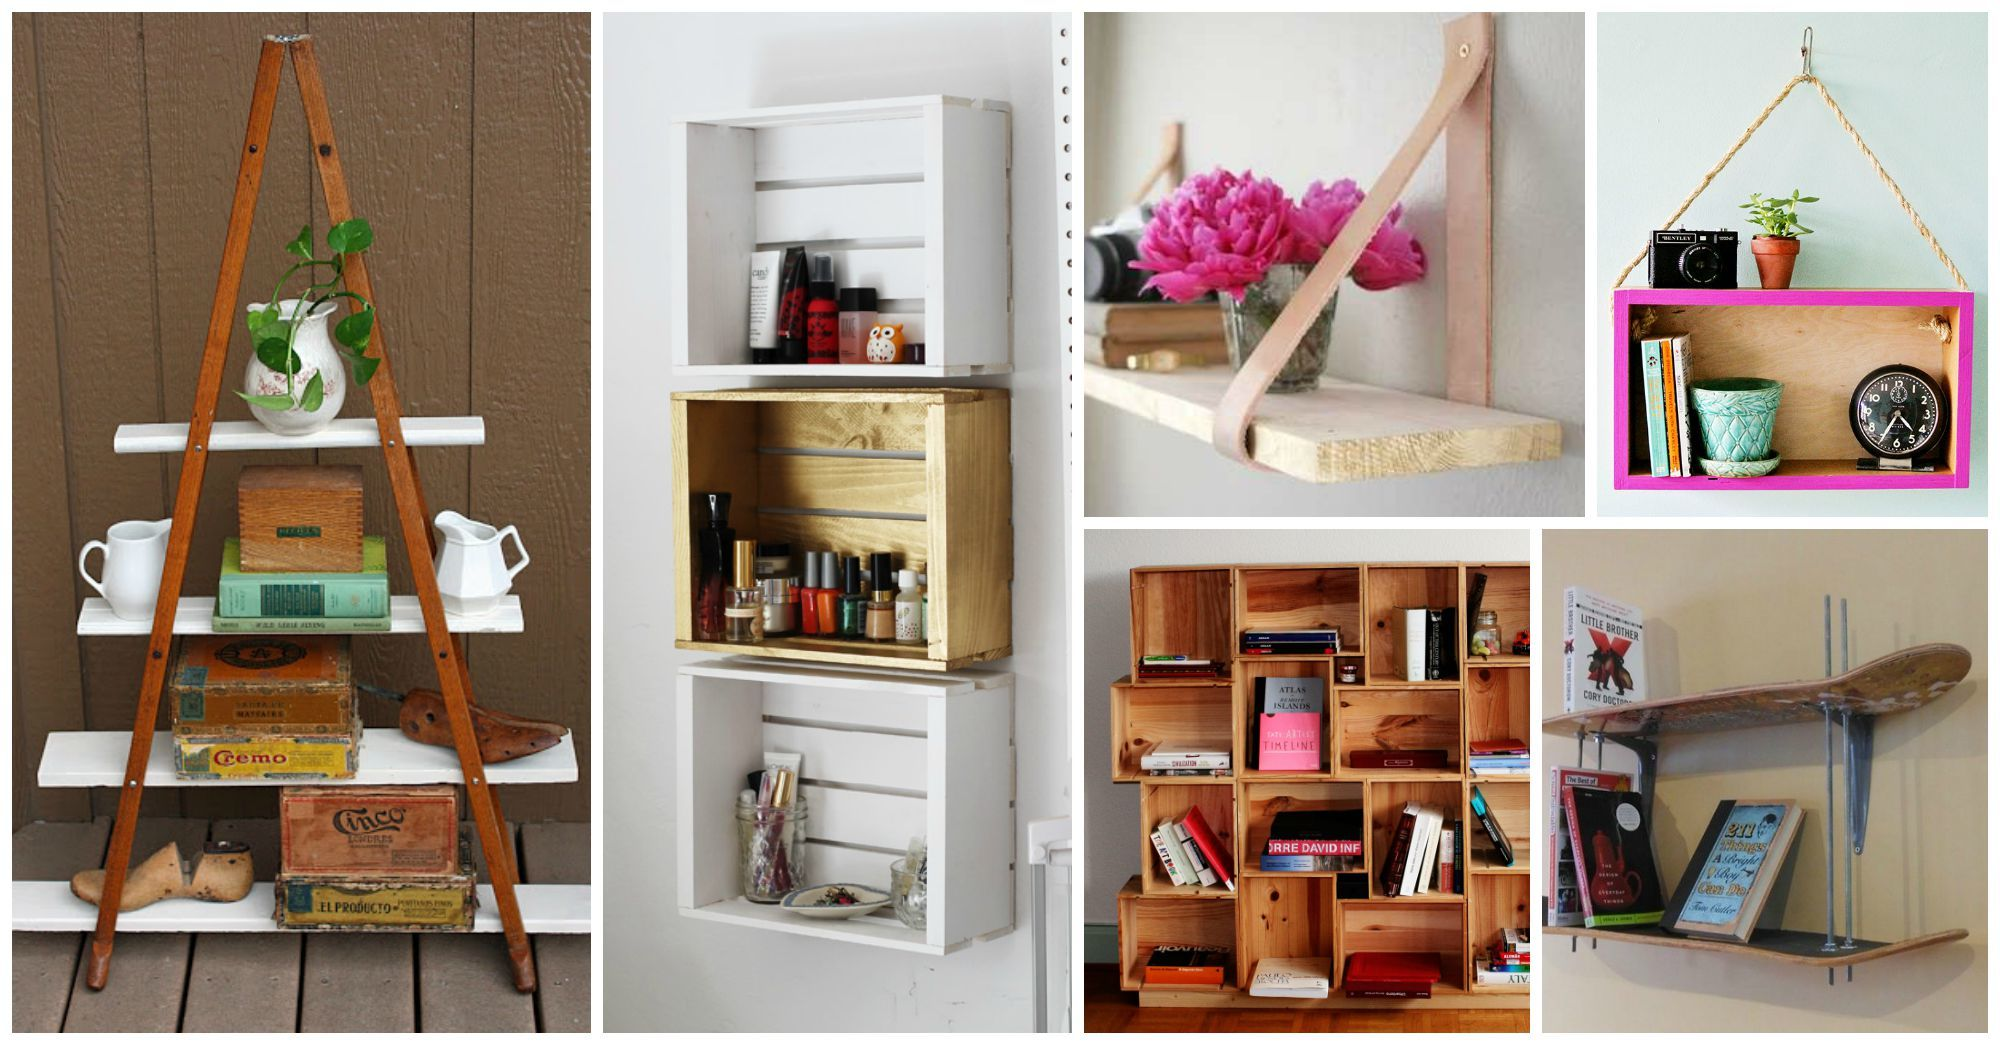 10 Inspirational Ideas That Will Make You Create Your Own Shelves